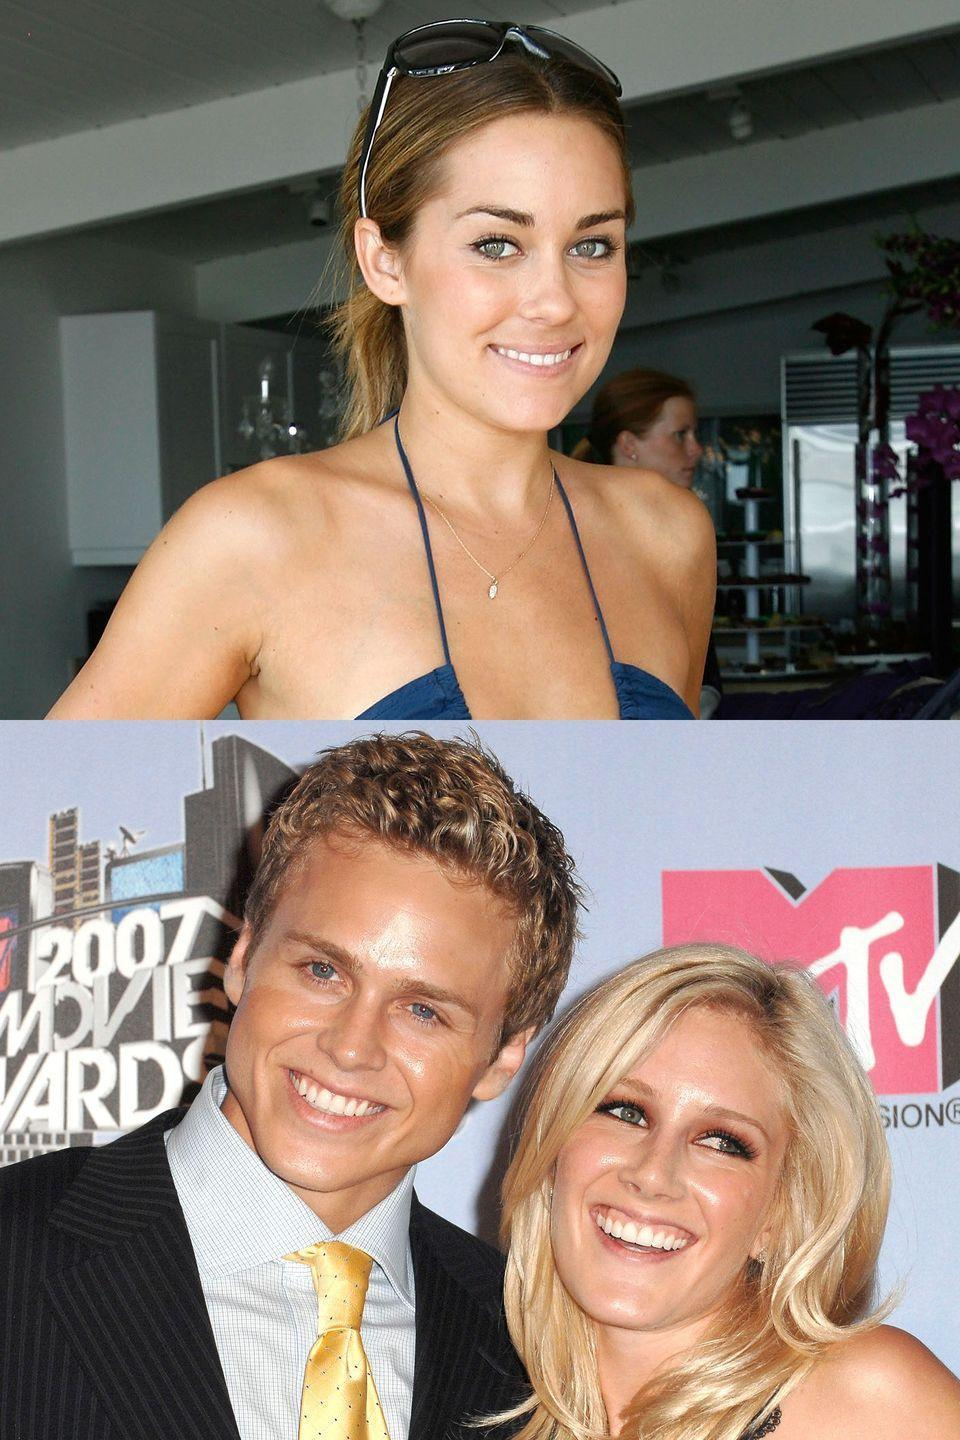 "<p>All hell broke loose for the cast of <em>The Hills</em> when <a href=""http://www.eonline.com/news/841837/it-s-been-10-years-since-lauren-conrad-and-heidi-montag-s-friendship-ended-looking-back-at-what-went-down"" rel=""nofollow noopener"" target=""_blank"" data-ylk=""slk:Perez Hilton reported"" class=""link rapid-noclick-resp"">Perez Hilton reported</a> that Conrad had made a sex tape with then boyfriend Jason Wahler. Conrad immediately denied the tape's existence, and mentioned that a friend ""didn't even call or text"" her any support. That friend was easily identified as Montag, and when the show's next season premiered, Conrad famously yelled at her, ""You know what you did!"" </p>"